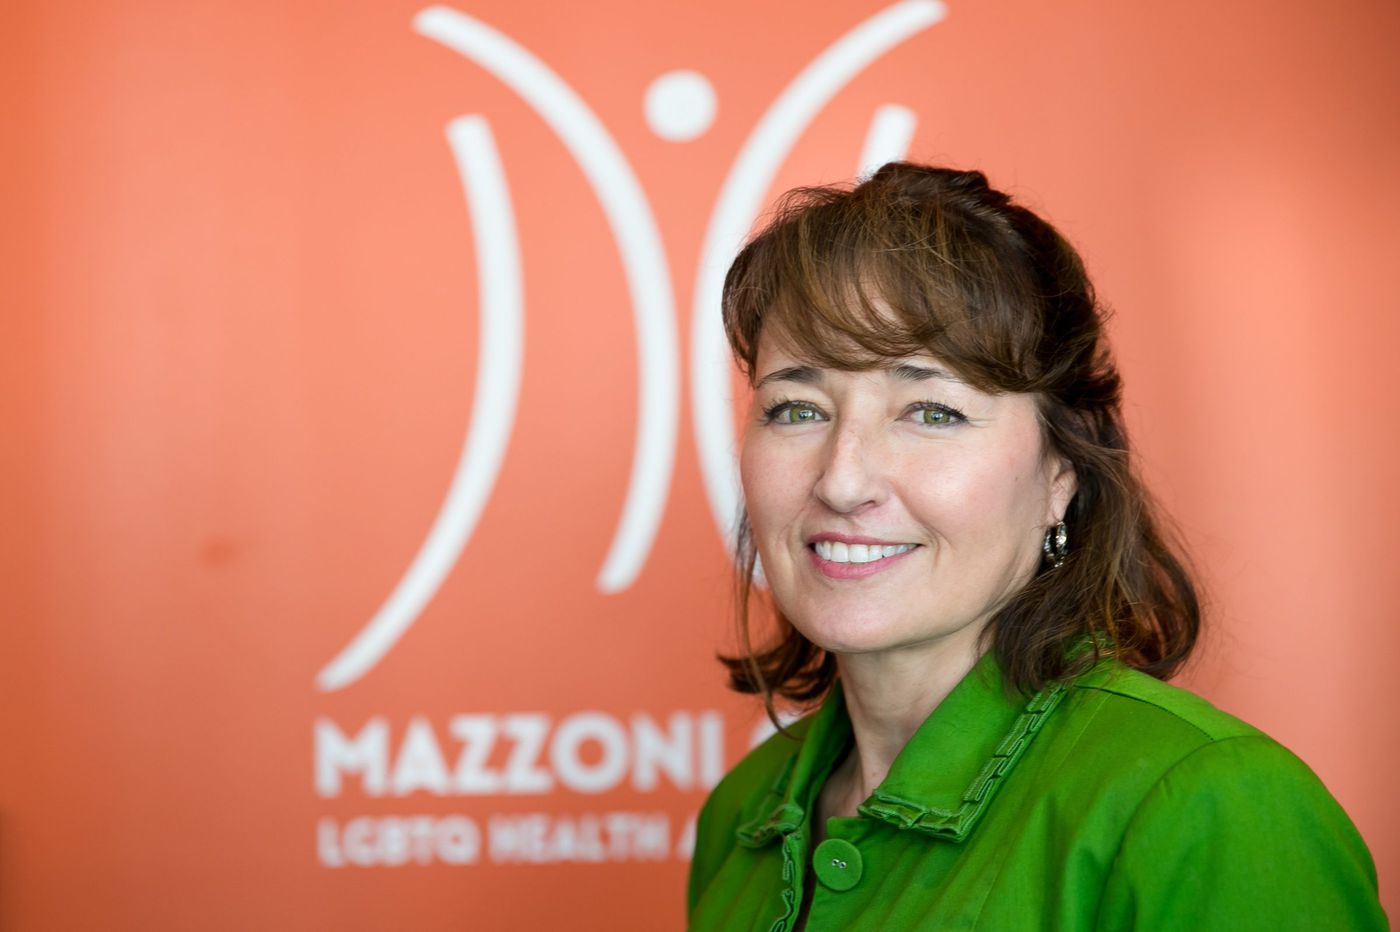 After backlash, Mazzoni Center CEO resigns